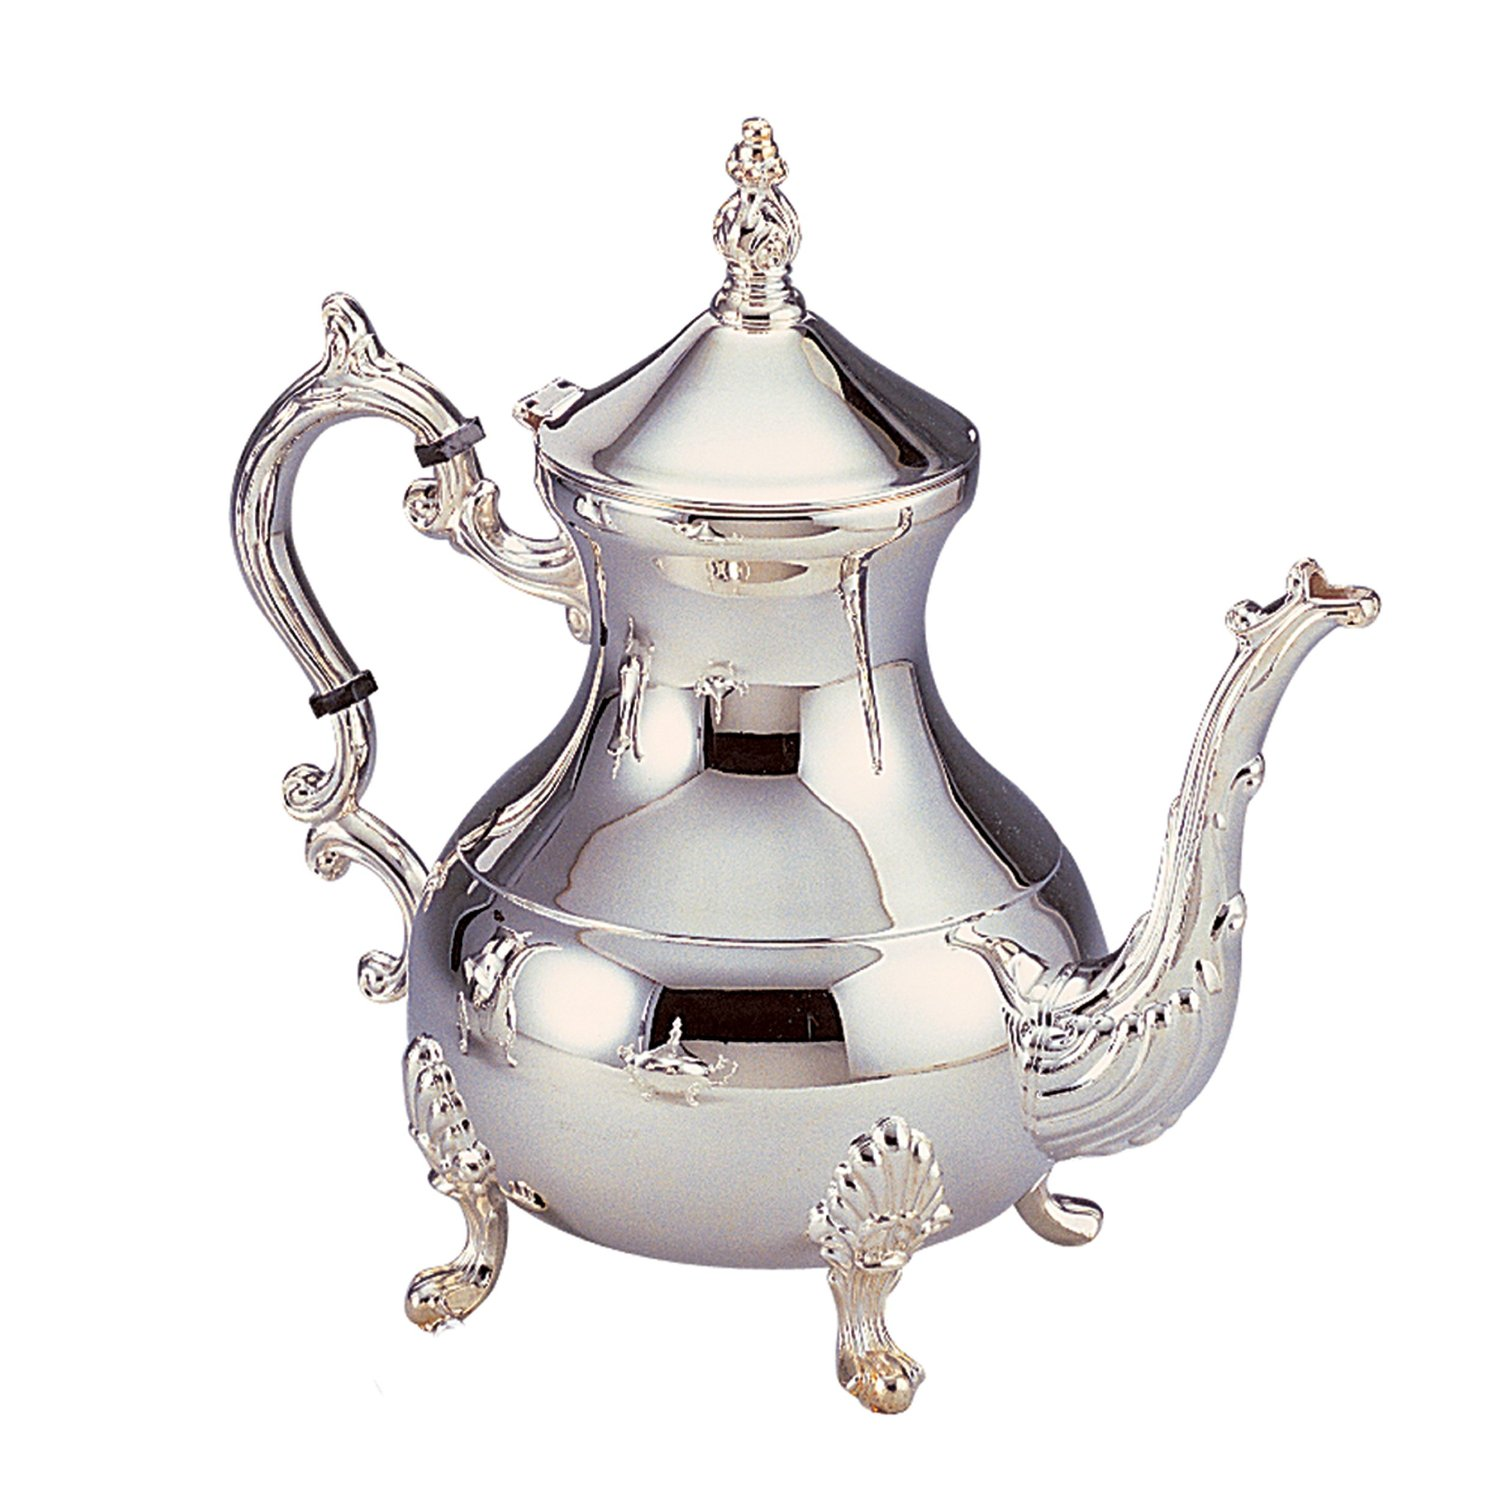 83b5ac4978e Moroccan Teapot  Top 10 Favorites You ll Love to Have! - SO MOROCCAN